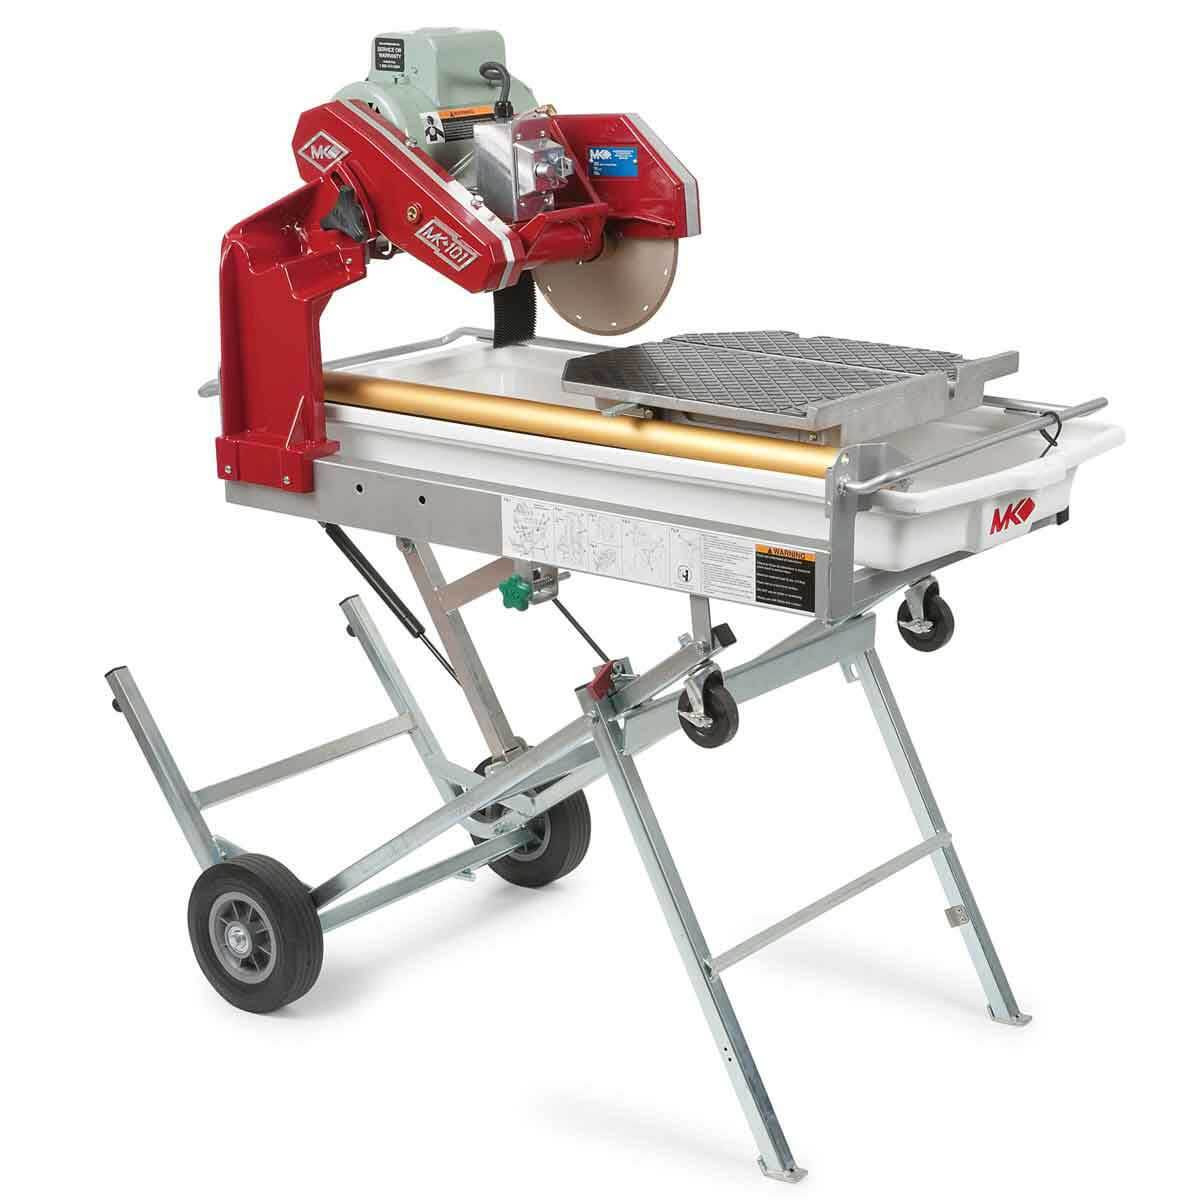 Mk 101 Pro24 Jcs Tile Saw With Stand